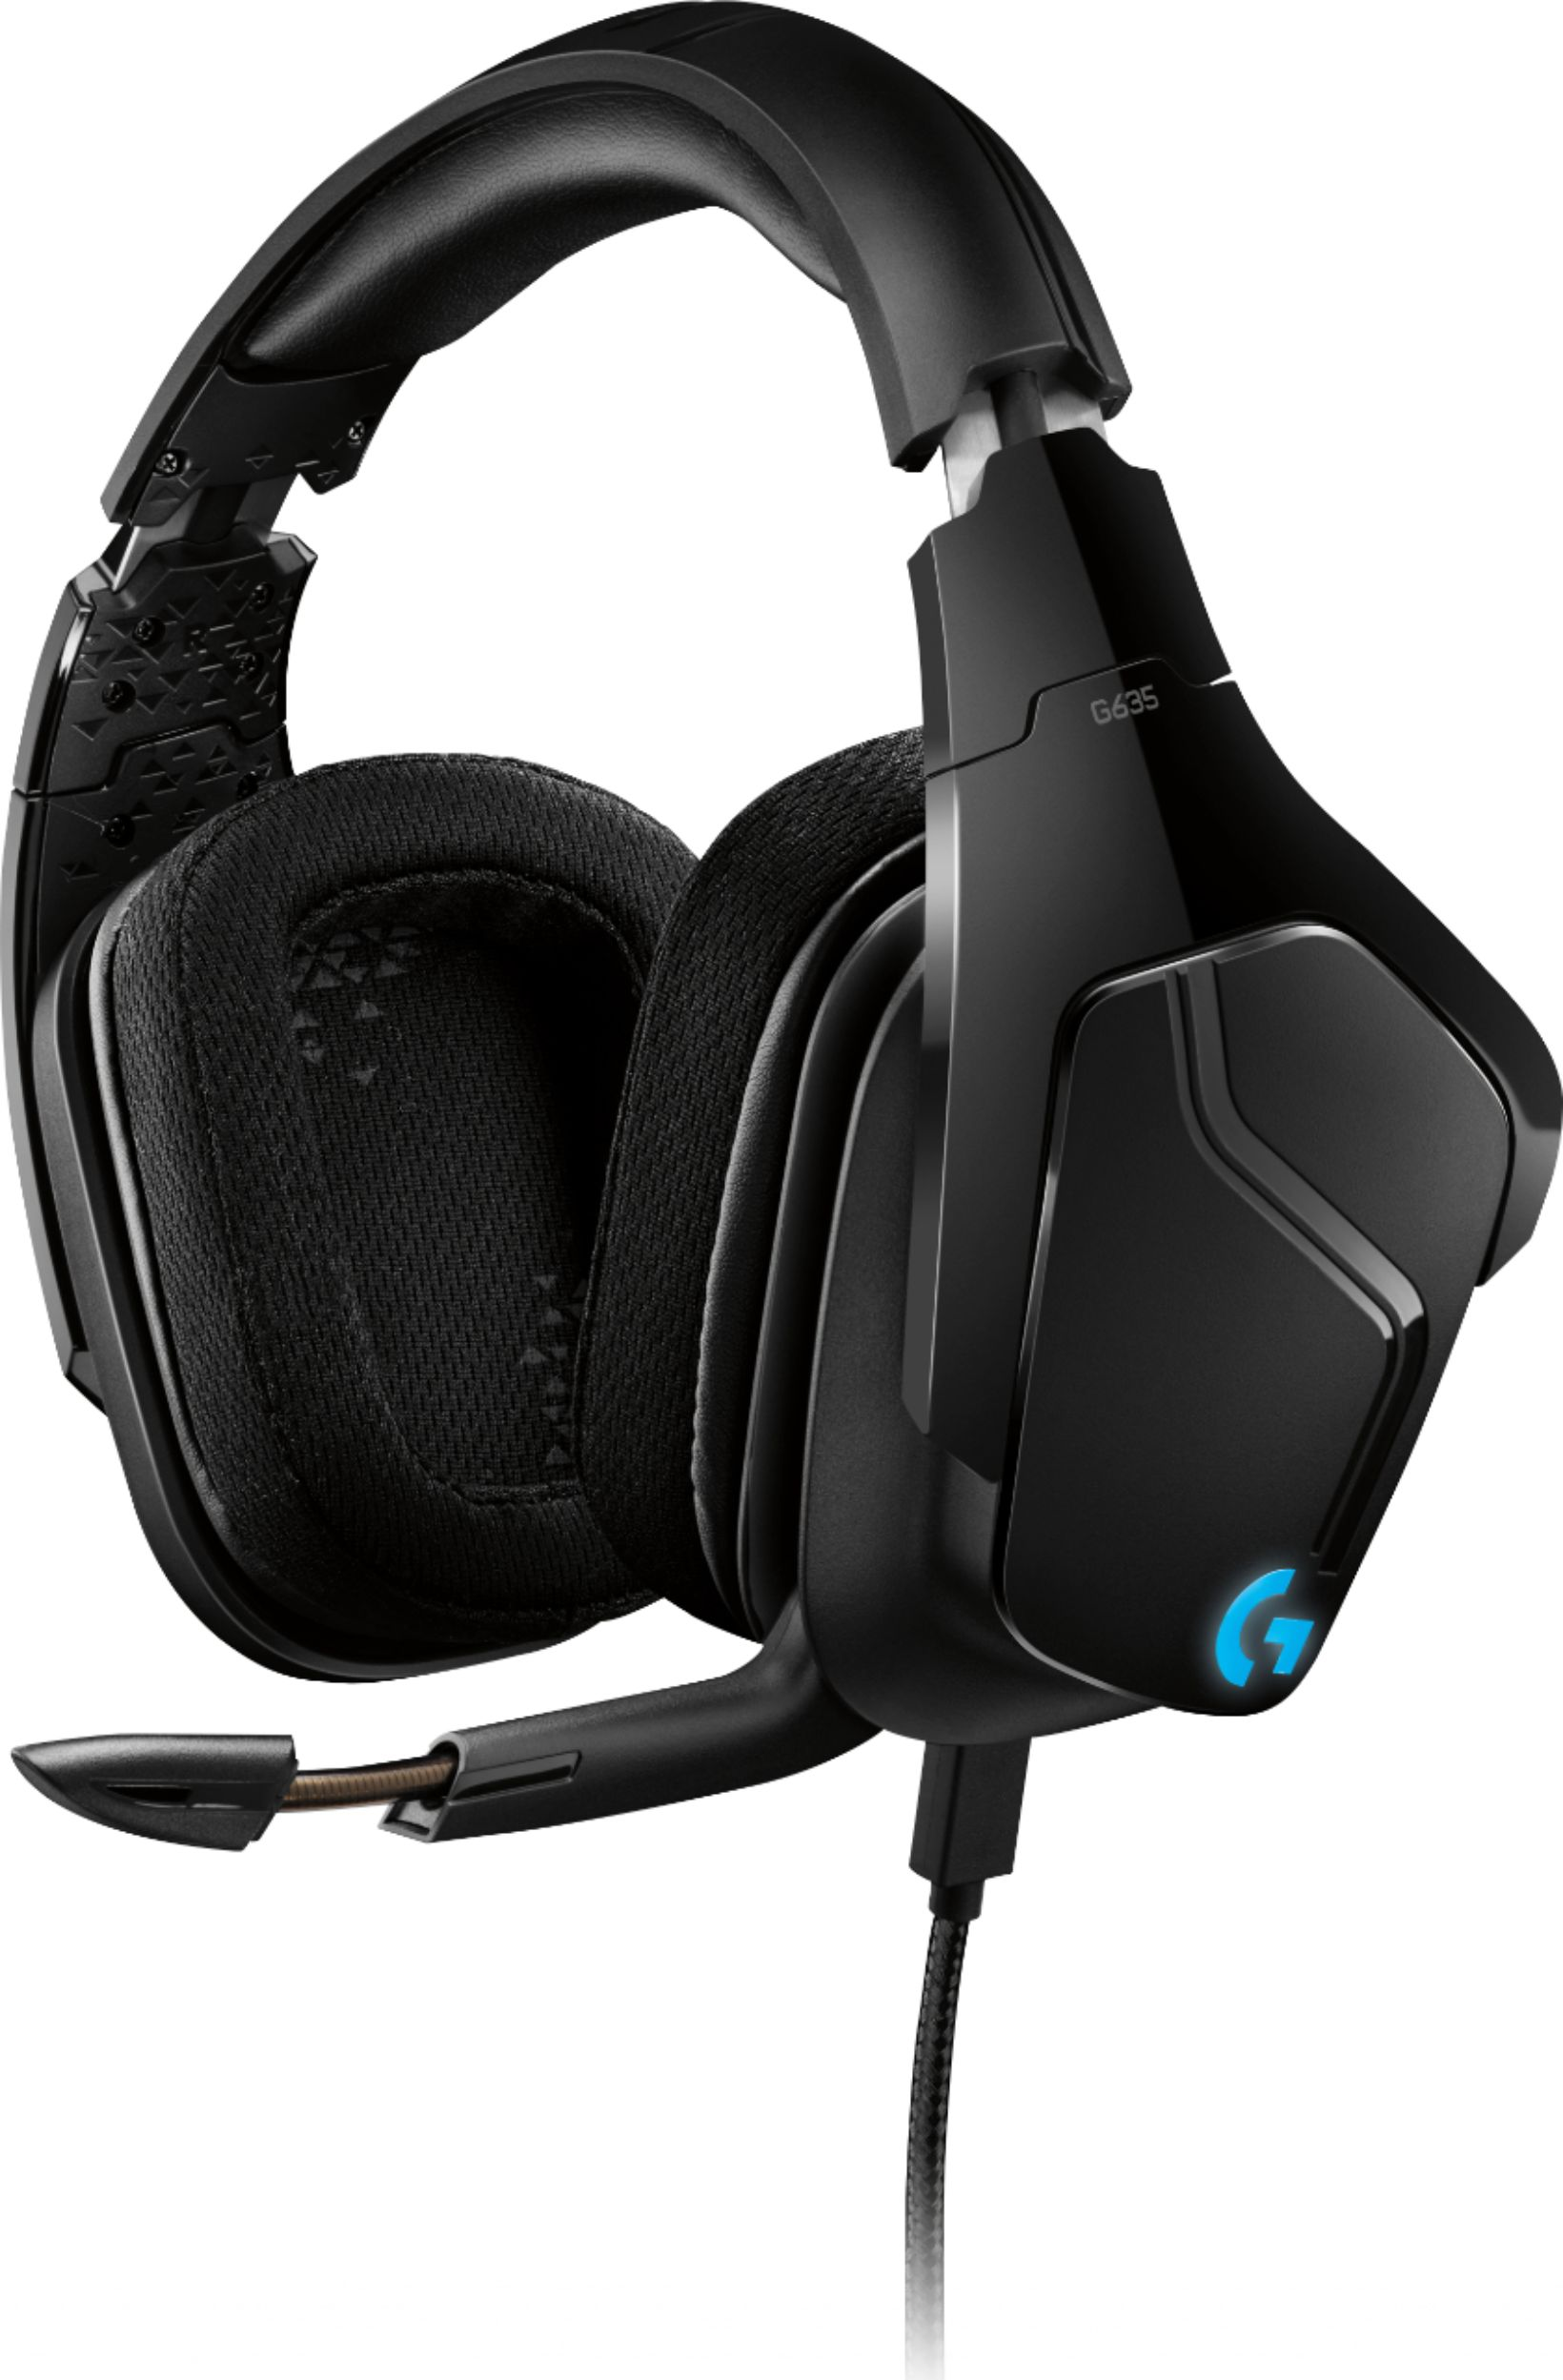 Logitech G635 7.1 LIGHTSYNC Wired Gaming Headset